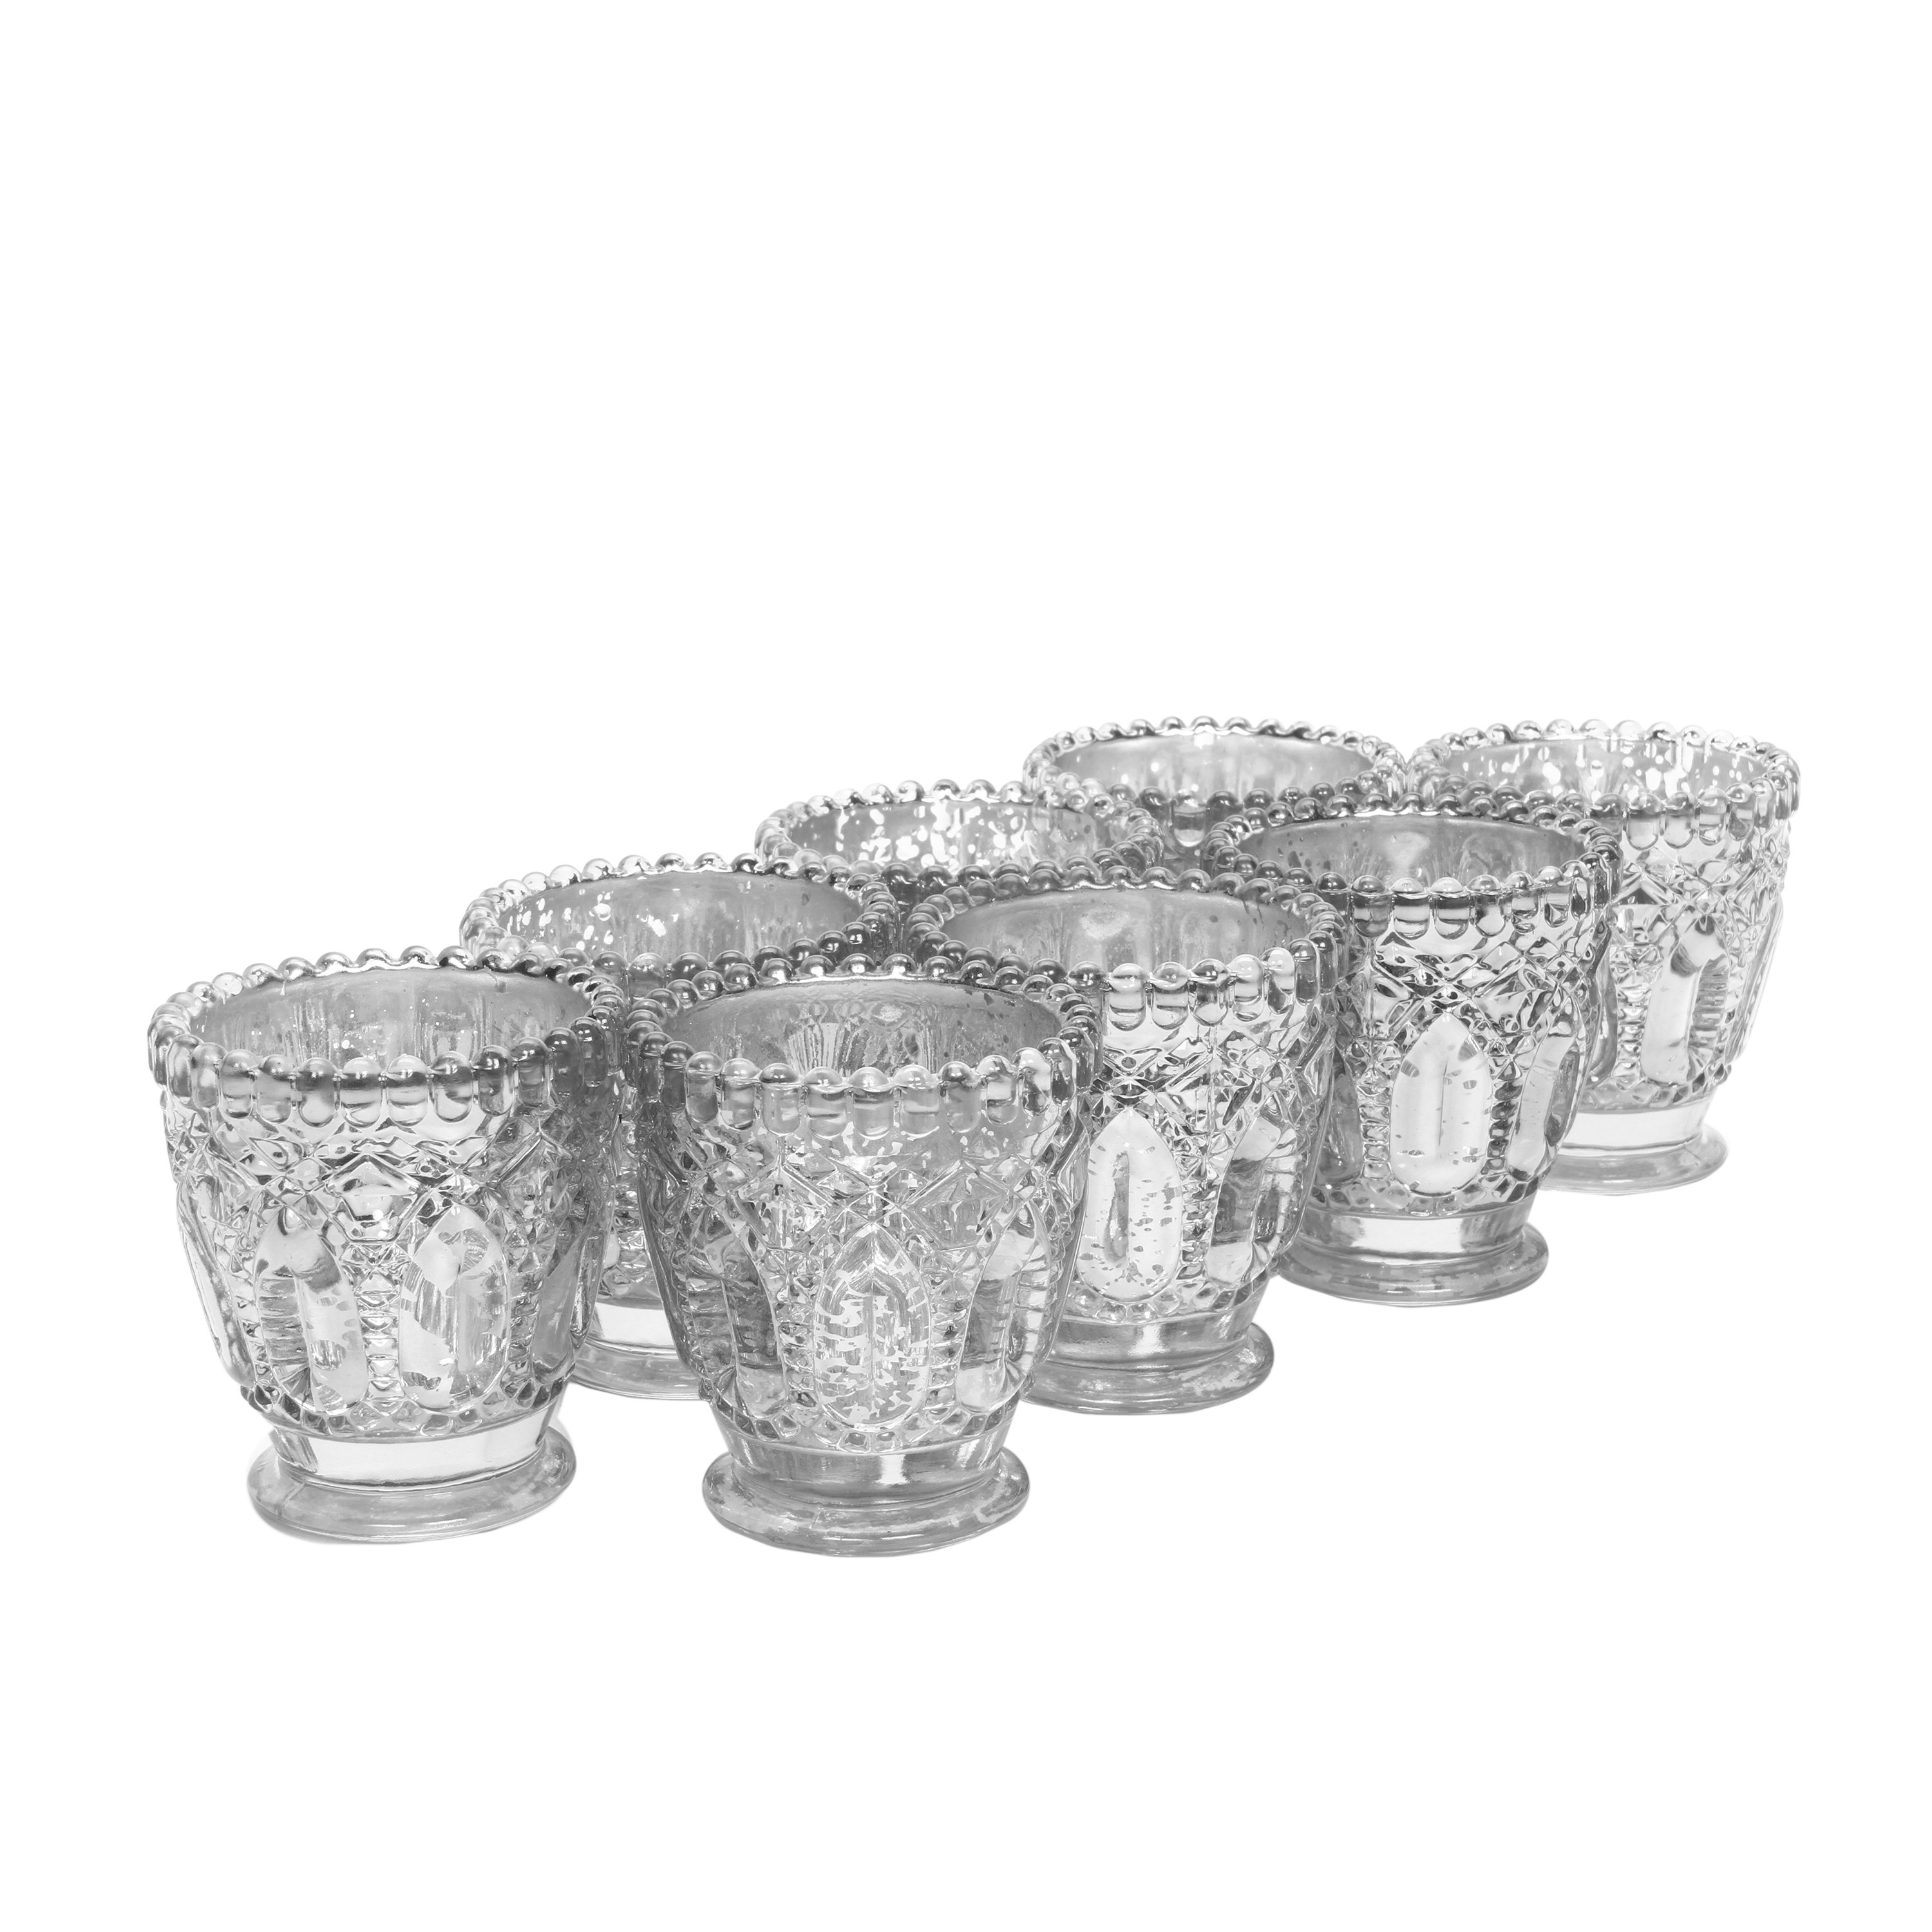 017a3bc1c3f9 Hosley s Set of 8 Silver Glass Candle Holder - 3.15